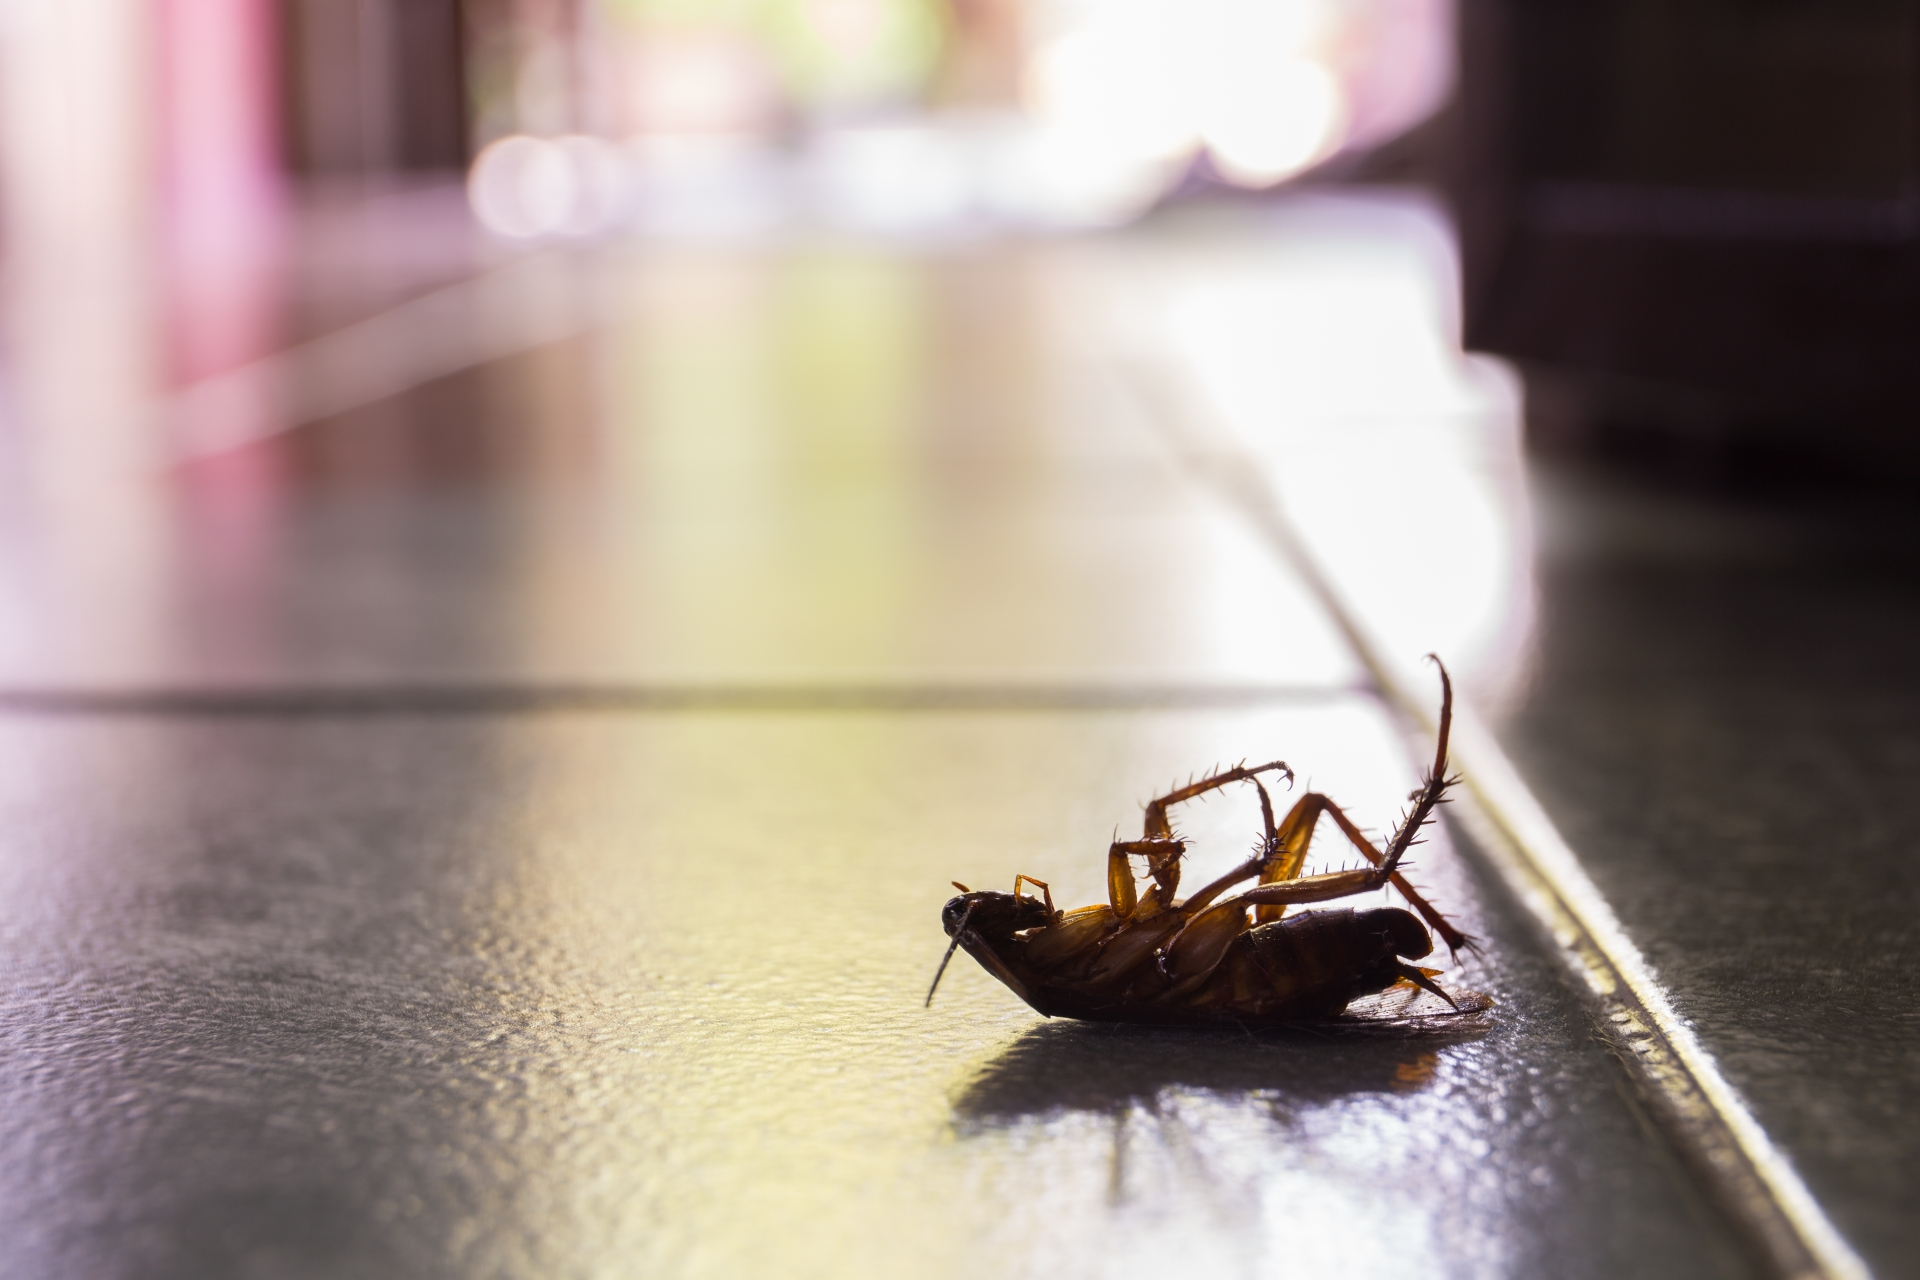 Cockroach Control, Pest Control in Clayhall, IG5. Call Now 020 8166 9746